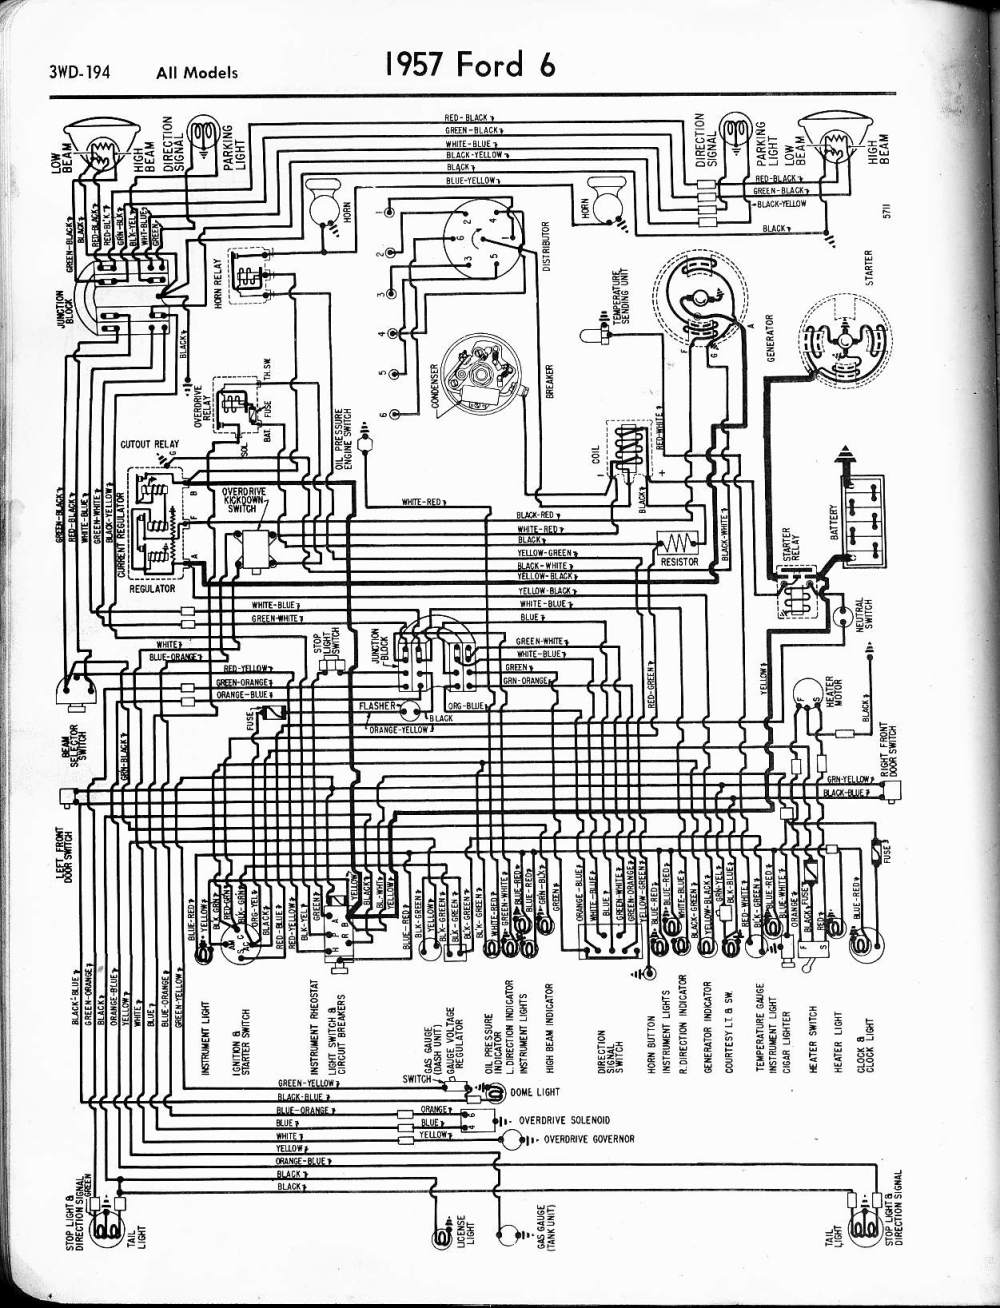 medium resolution of 1955 ford wiring harness diagrams wiring diagram1955 ford wiring harness wiring diagram article review1955 ford wiring